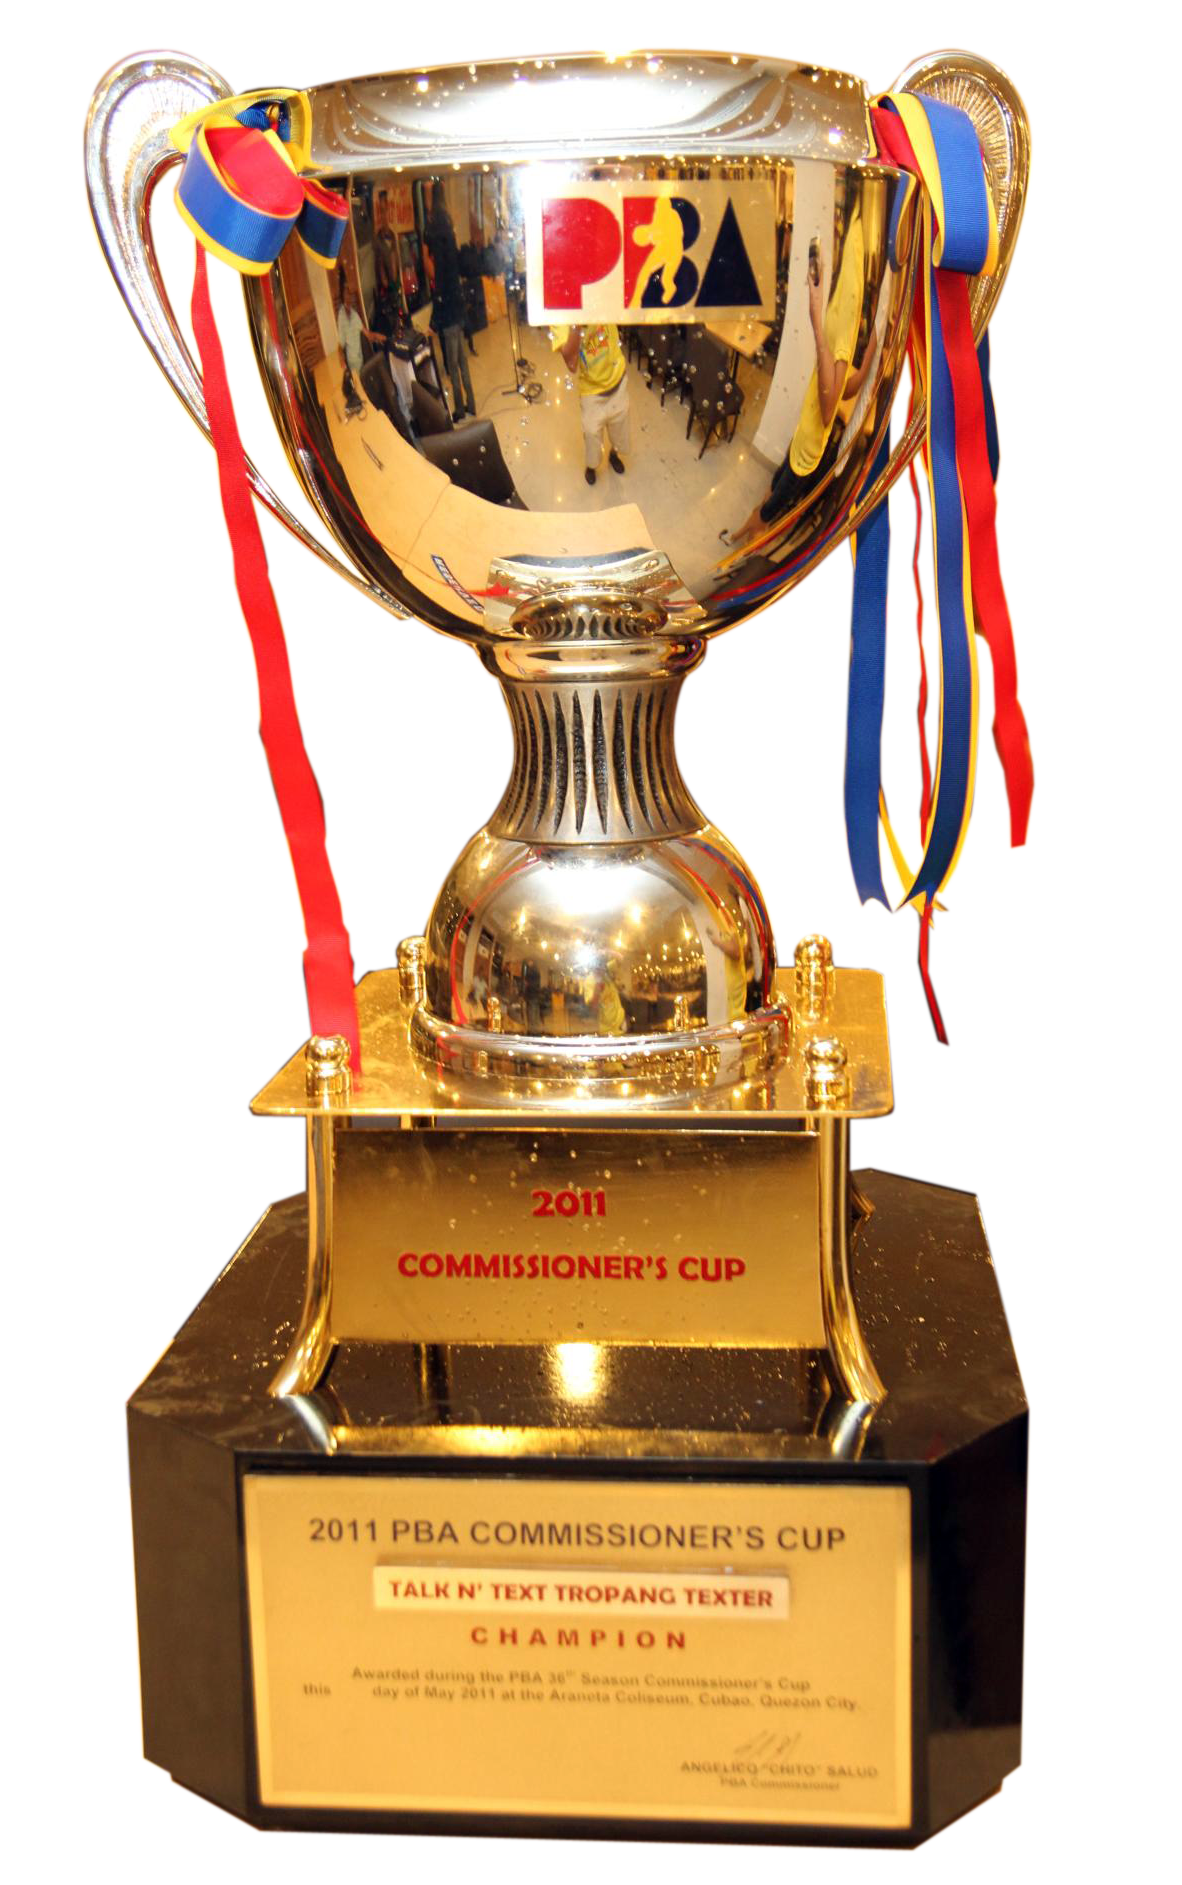 FilePBA Commissioneru0027s Cup Trophy